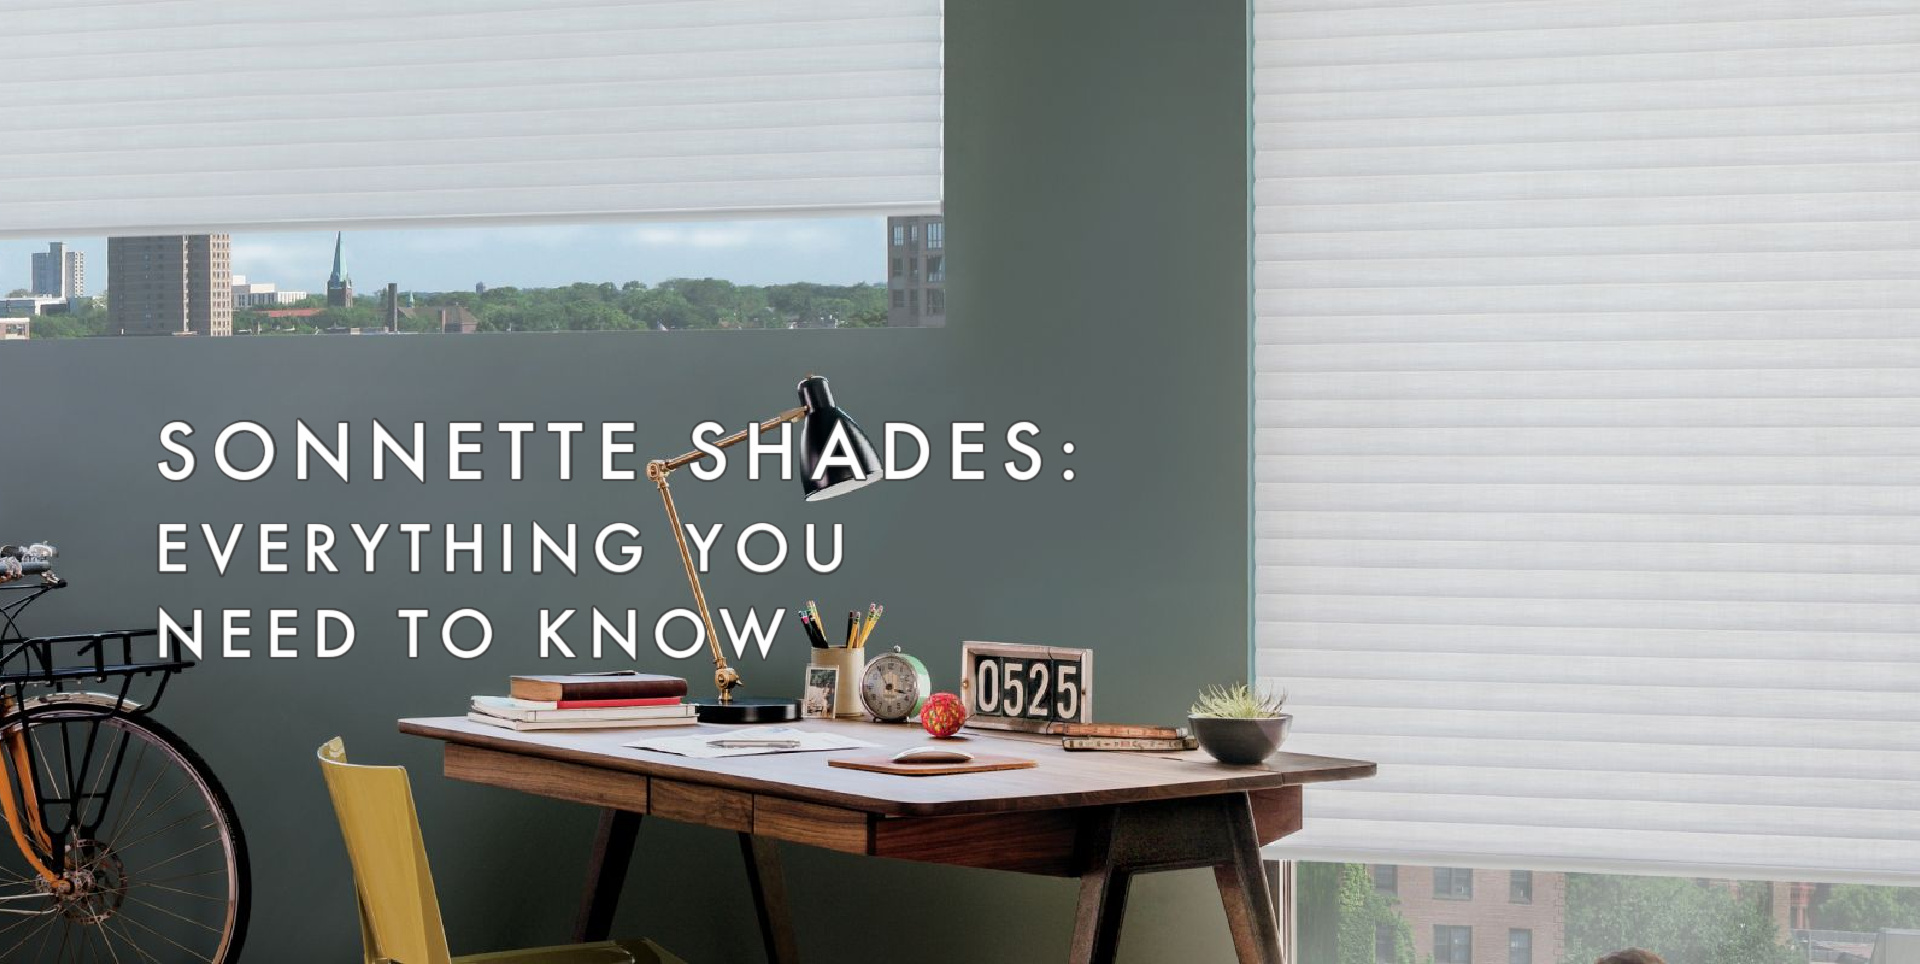 Sonnette Shades in contemporary office windows